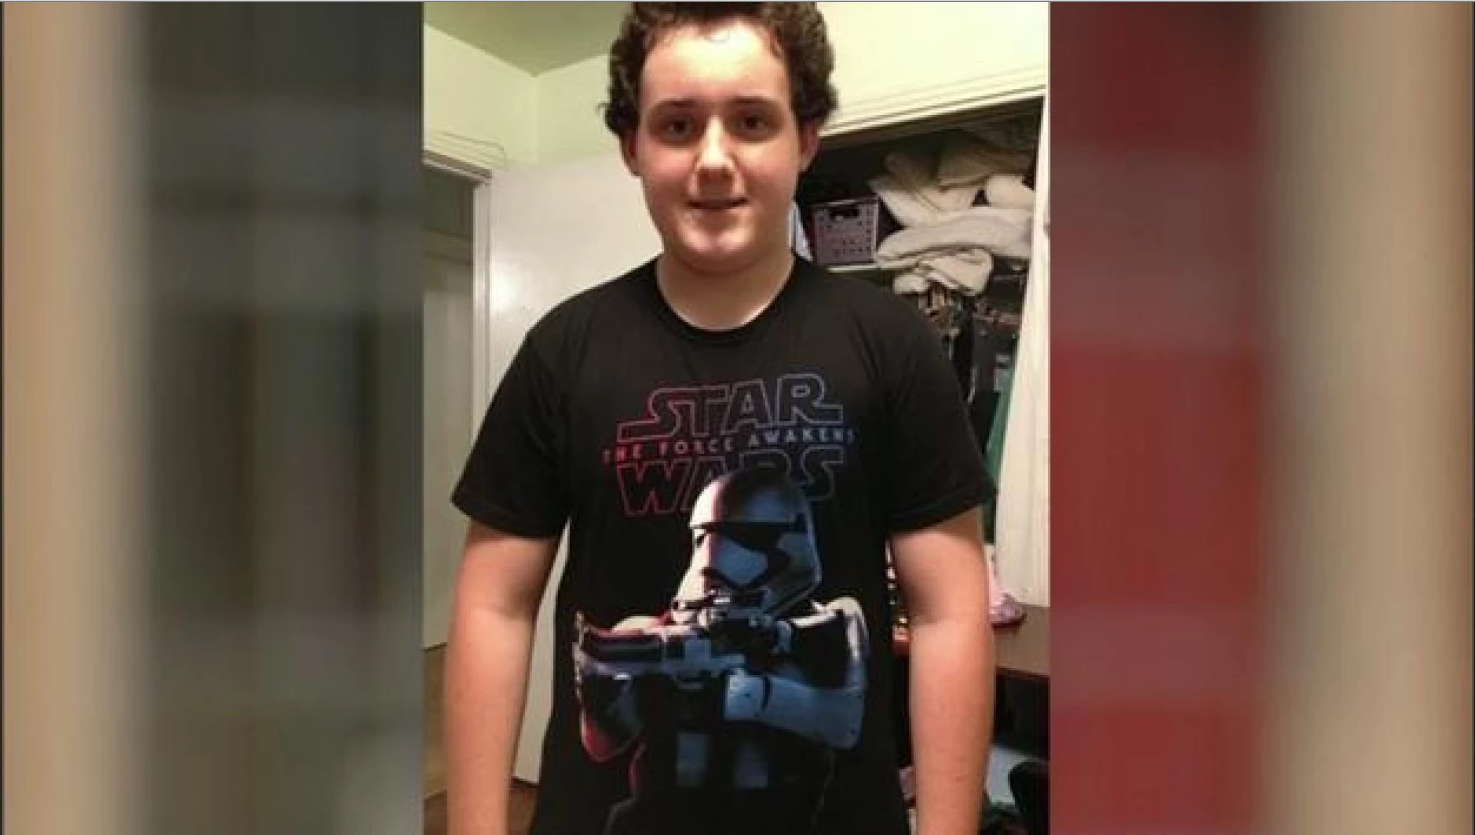 Colton Southern and his t-shirt, seen in KTRK's report